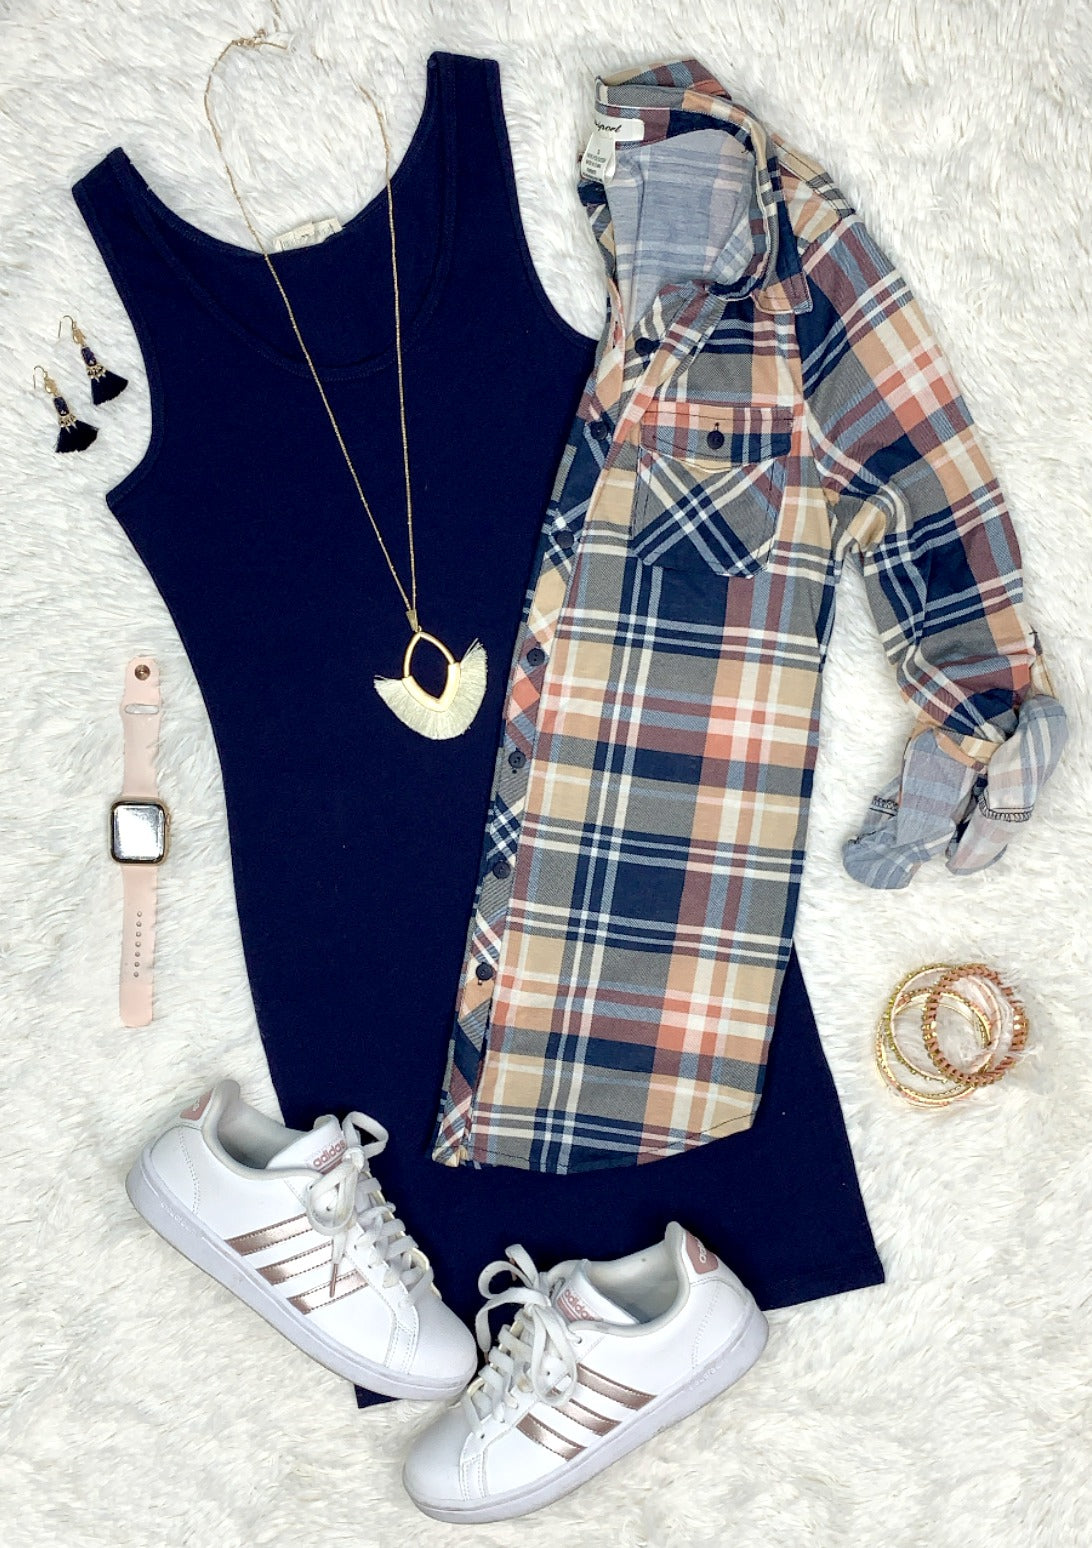 Penny Plaid Flannel Top - Navy/Blush